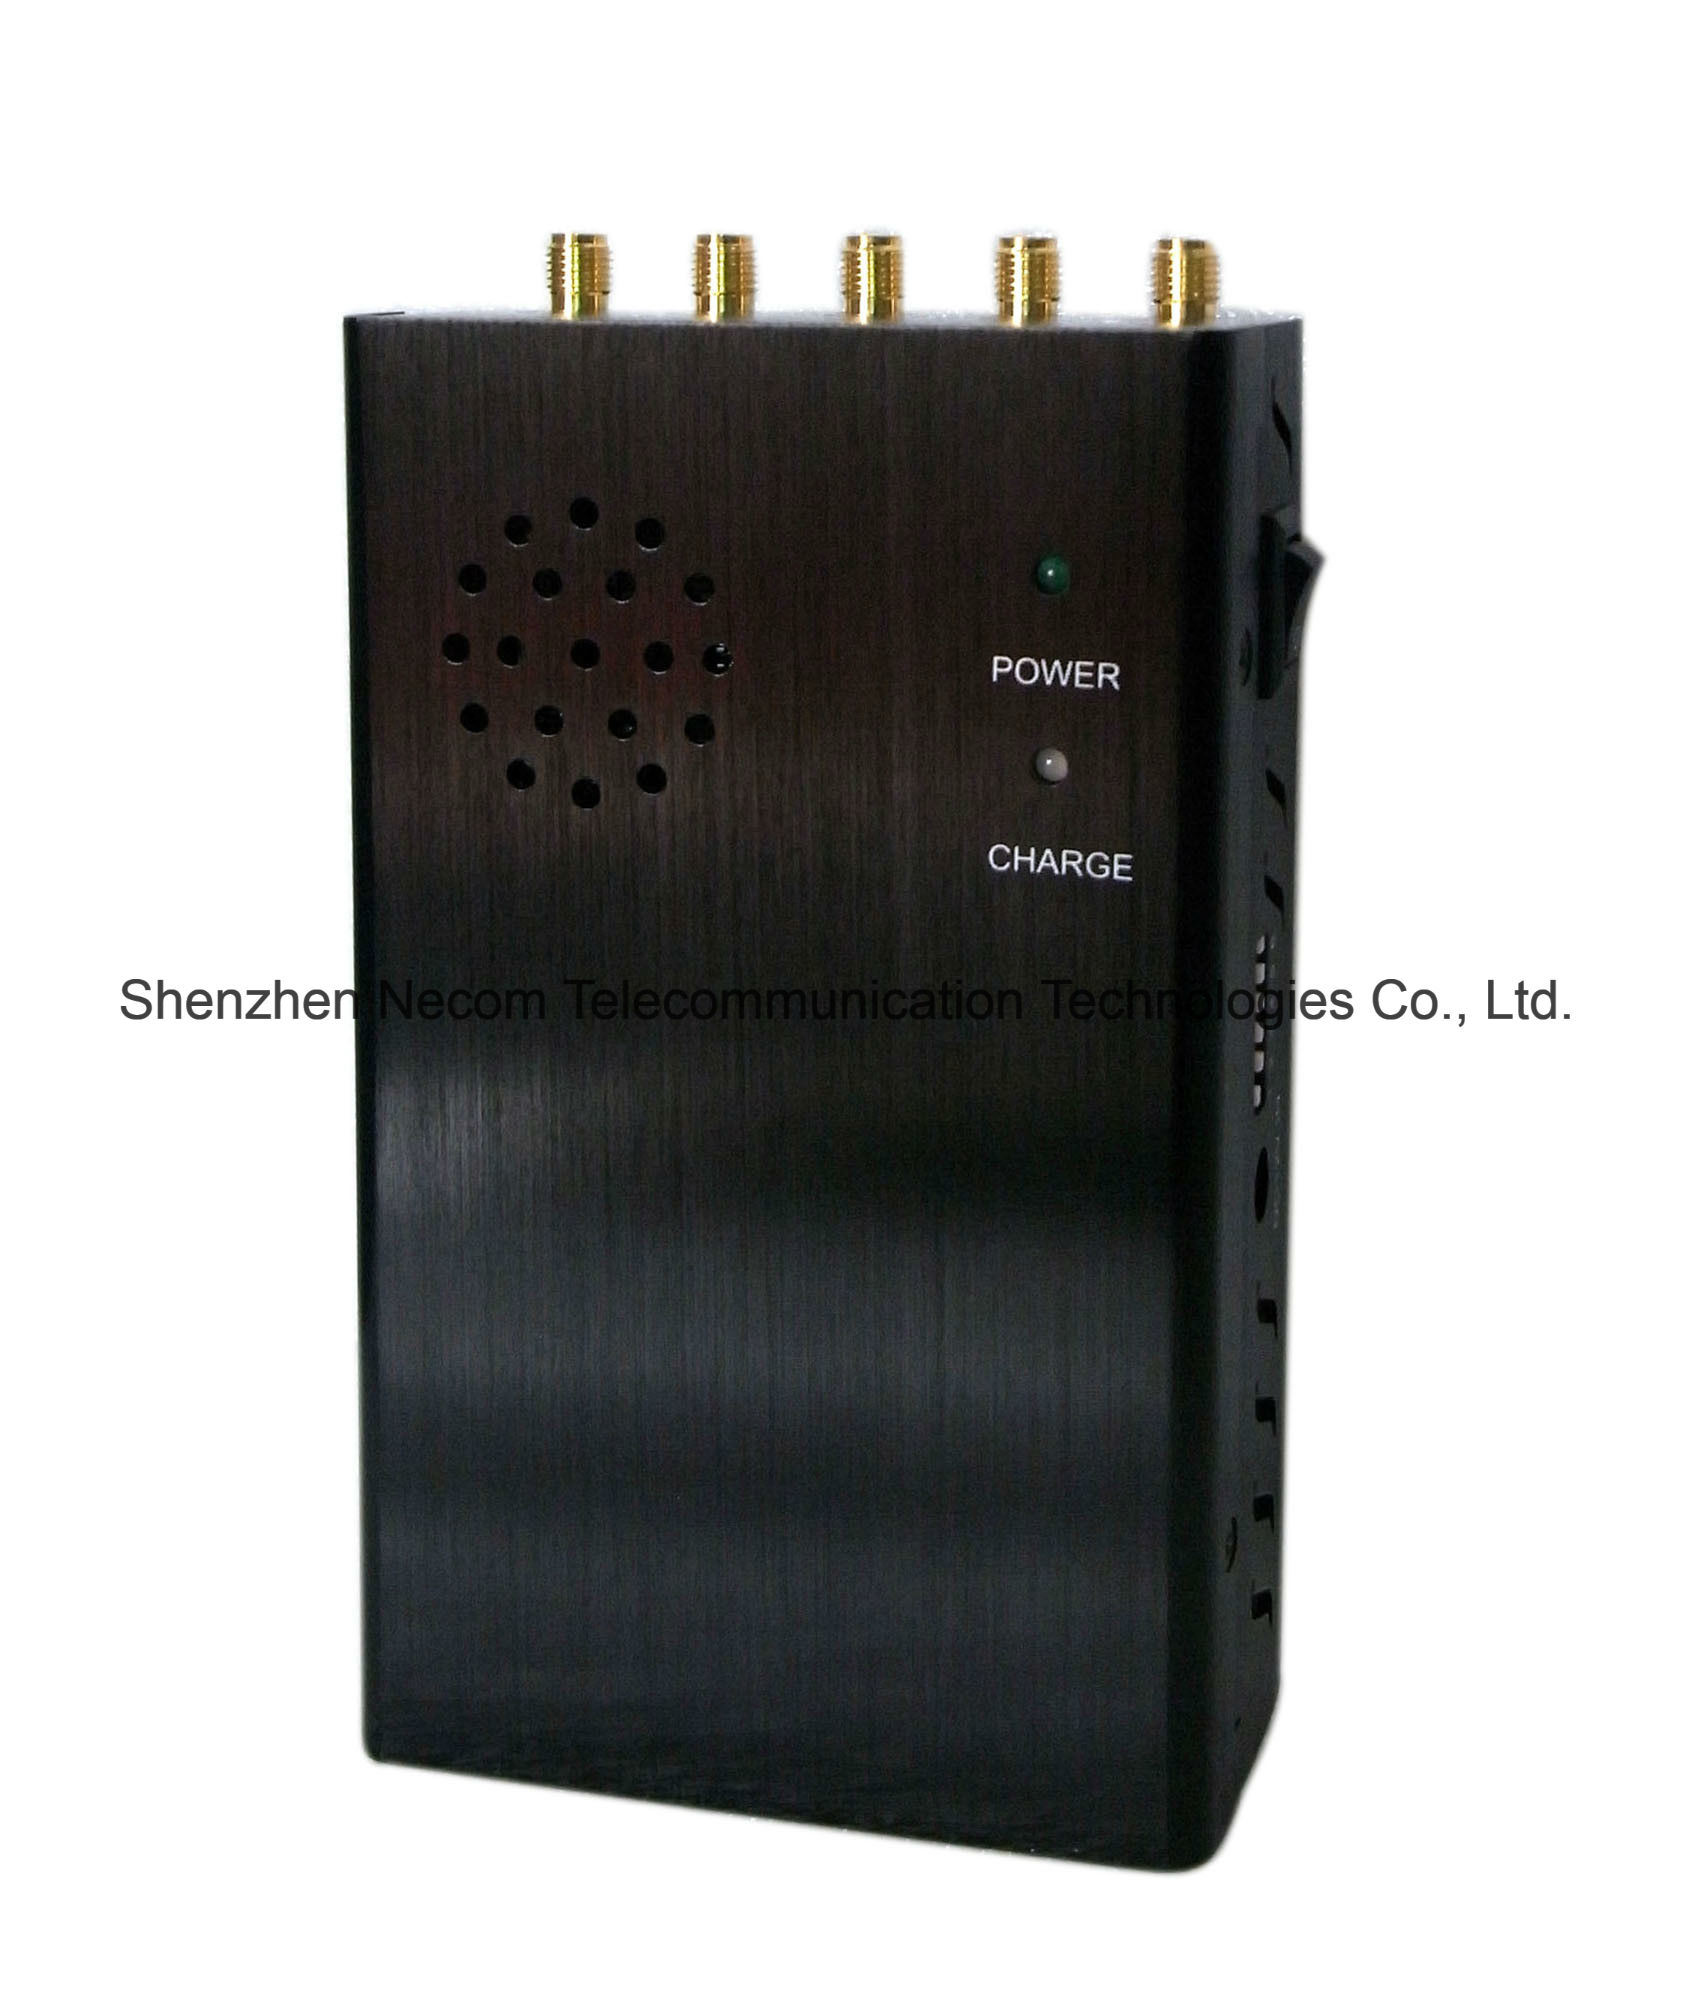 buy jammers - China Wireless Signal Jammer with Good Quality&Favourable Price Jamming for Wired Camera, GPS Tracker, Mobile Phones, GSM Jammer/GPS Jammer /Cell Phone Jammer - China 5 Band Signal Blockers, Five Antennas Jammers